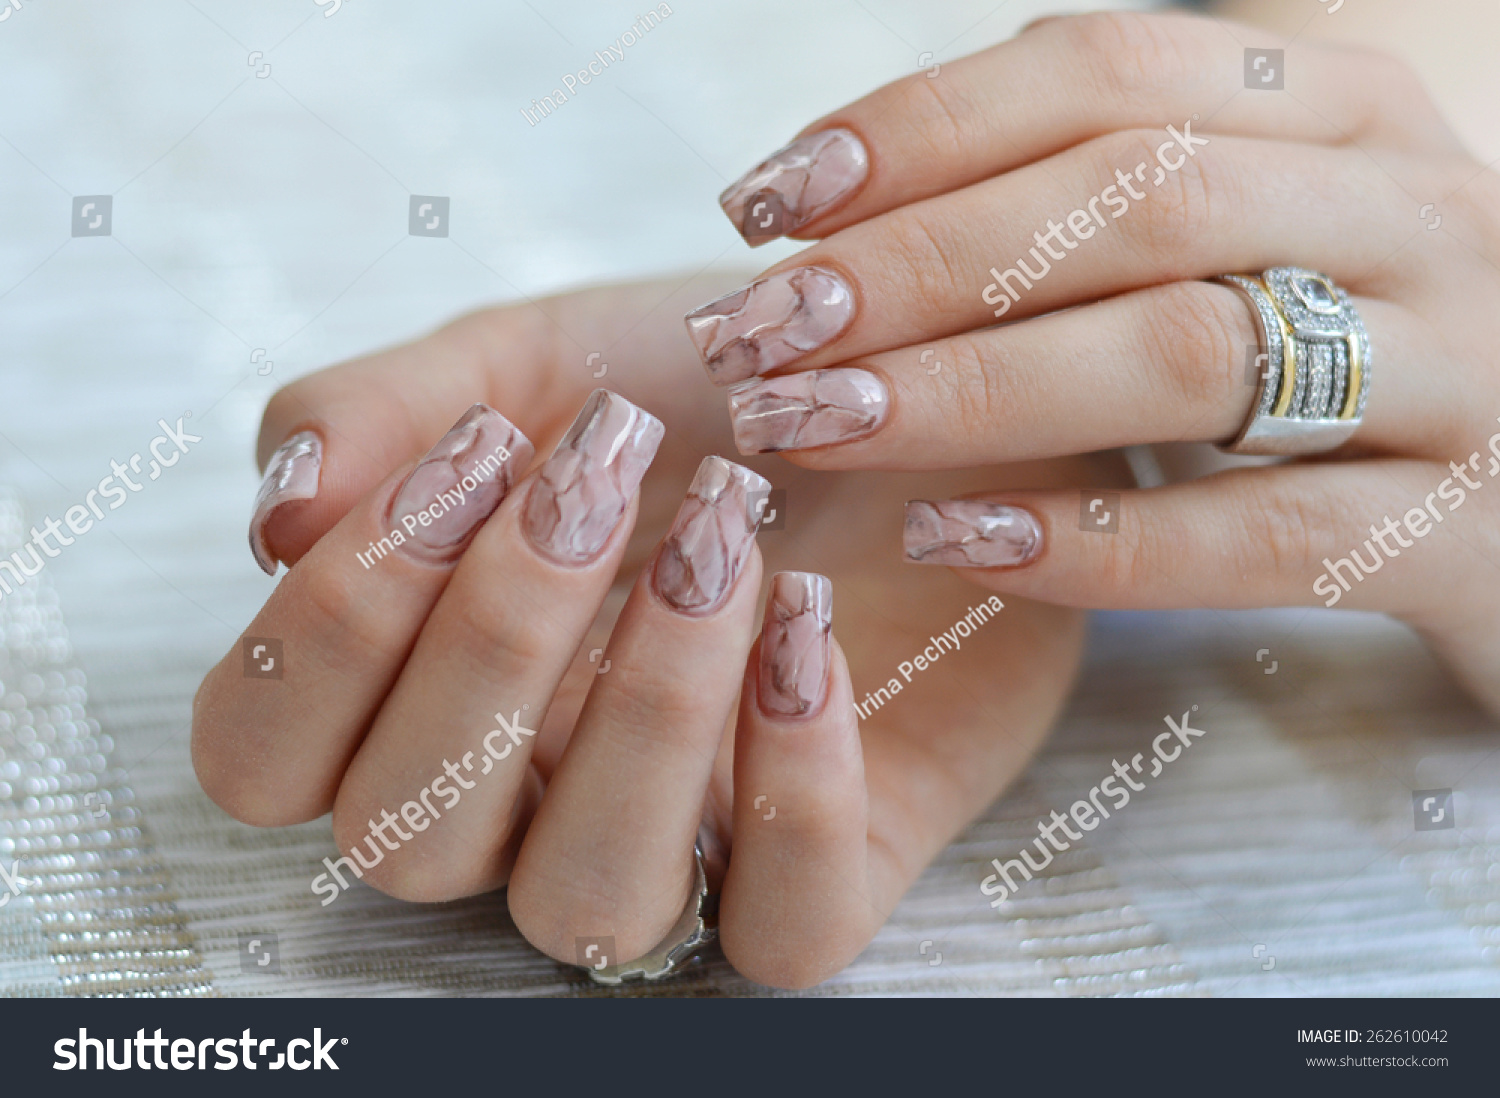 Unusual marble textured nail art design stock photo 262610042 unusual marble textured nail art design in earthy tones prinsesfo Images